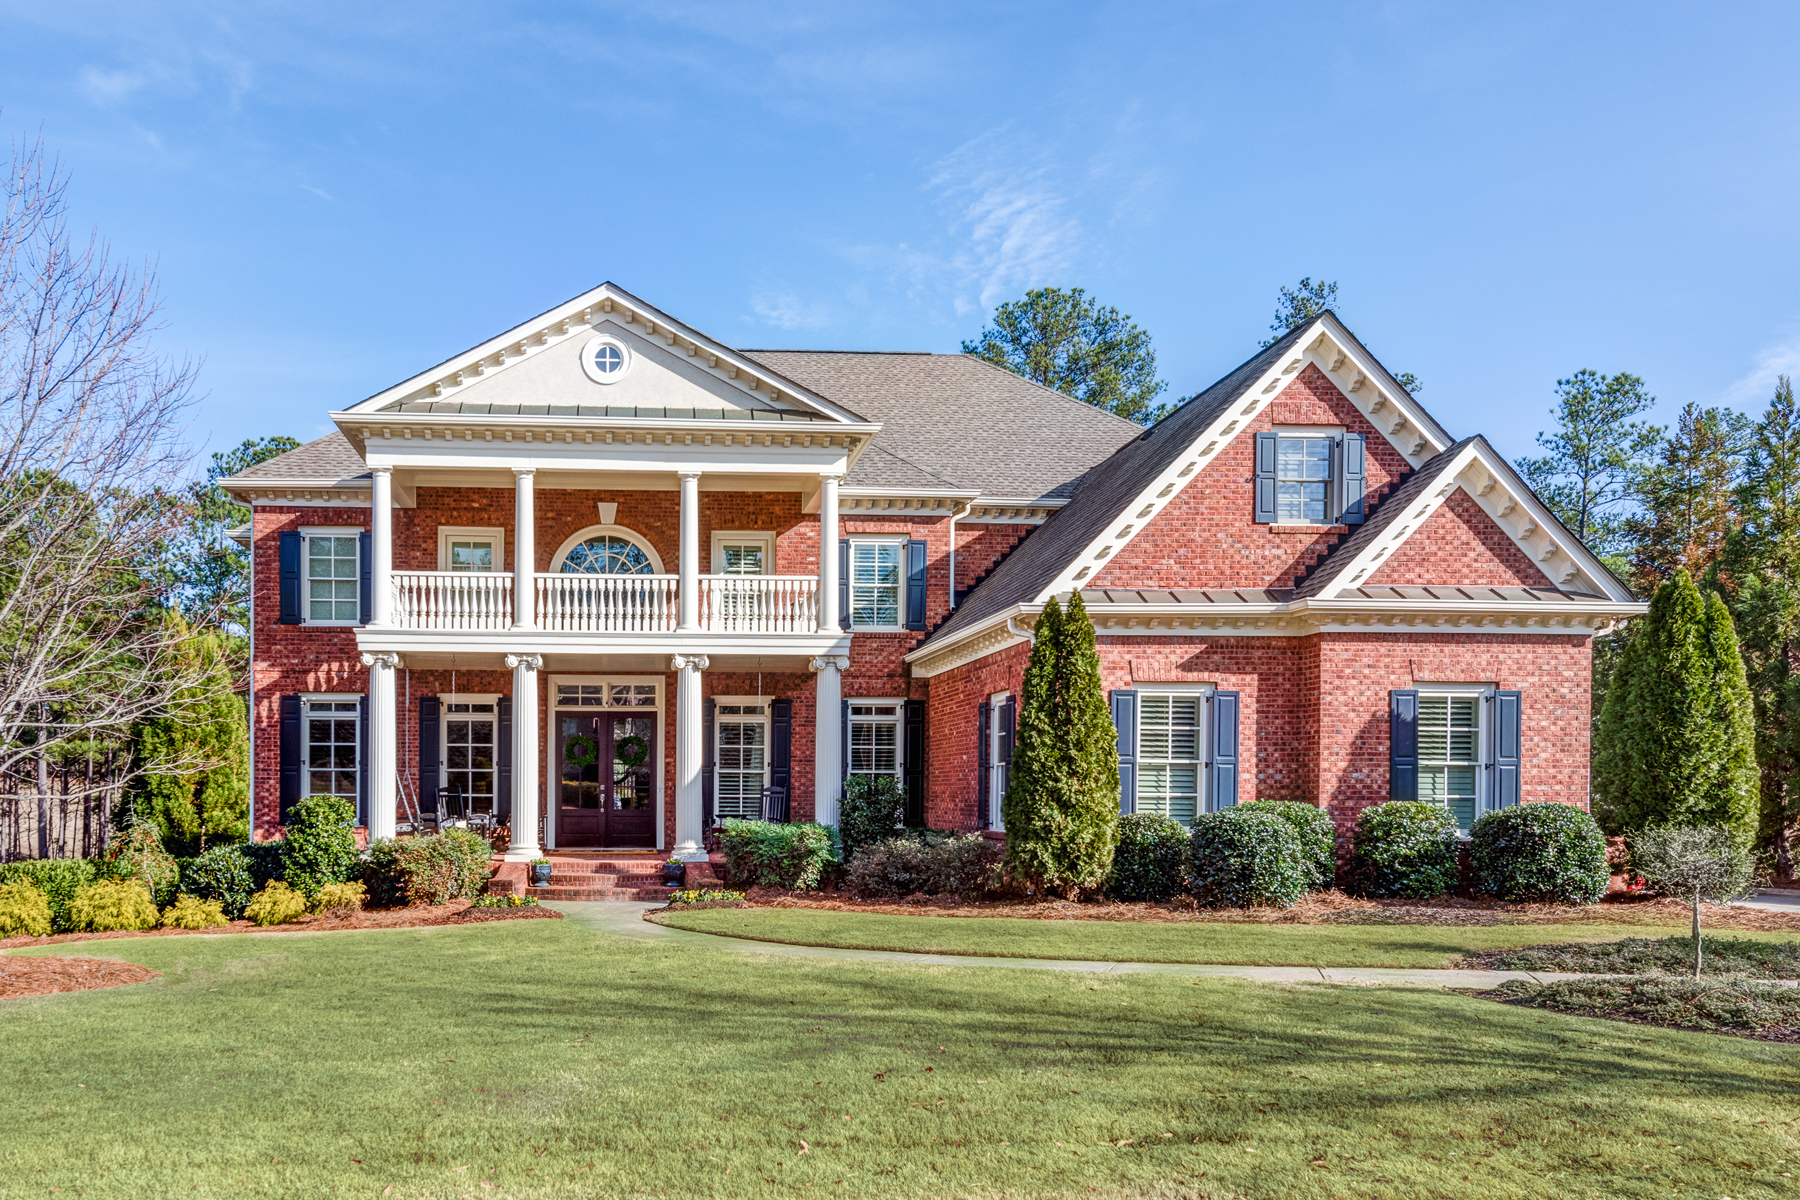 Vivienda unifamiliar por un Venta en Luxury Home In Gated Golf Community 4374 Oglethorpe Loop NW Acworth, Georgia 30101 Estados Unidos